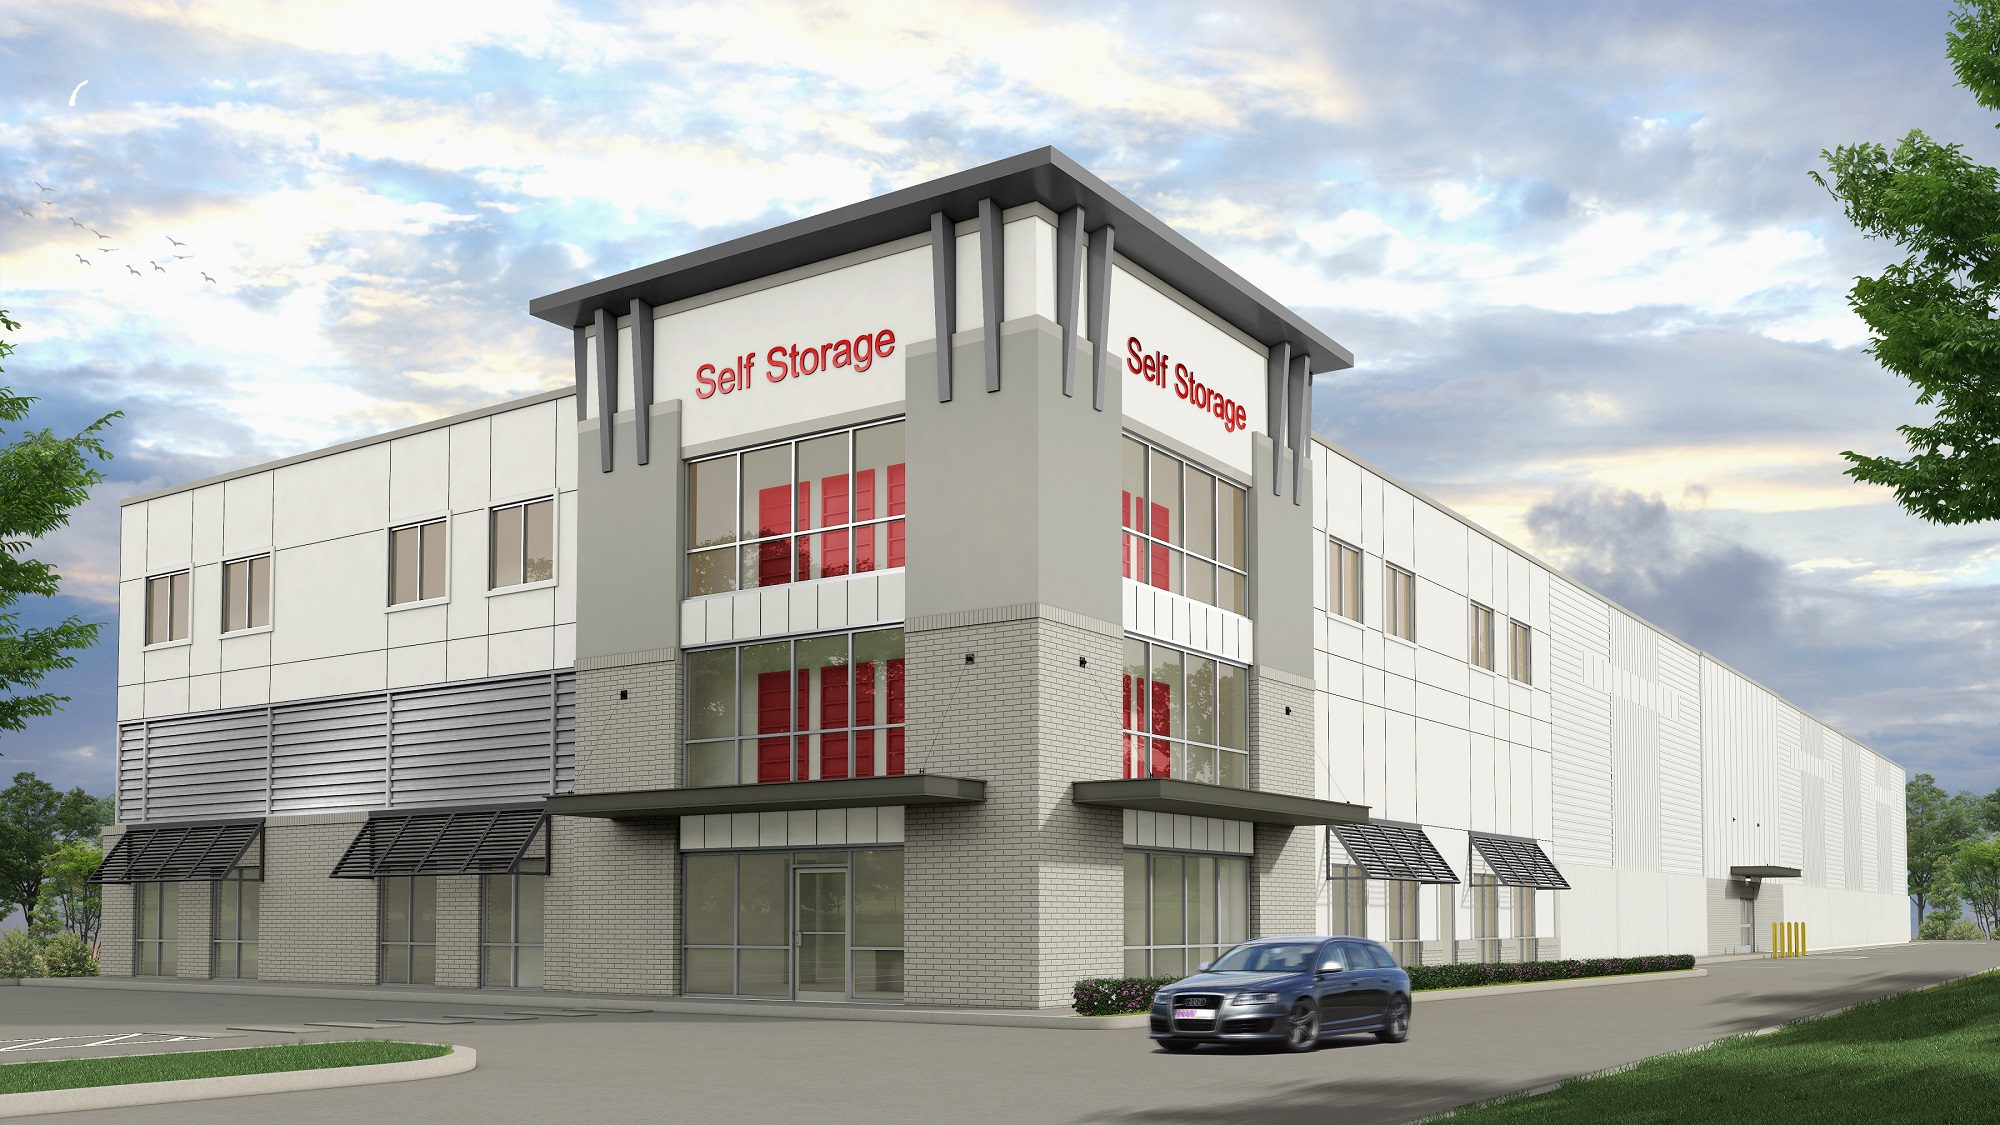 Self Storage Tampa Nitneil Partners Recent Development Projects In Self Storage